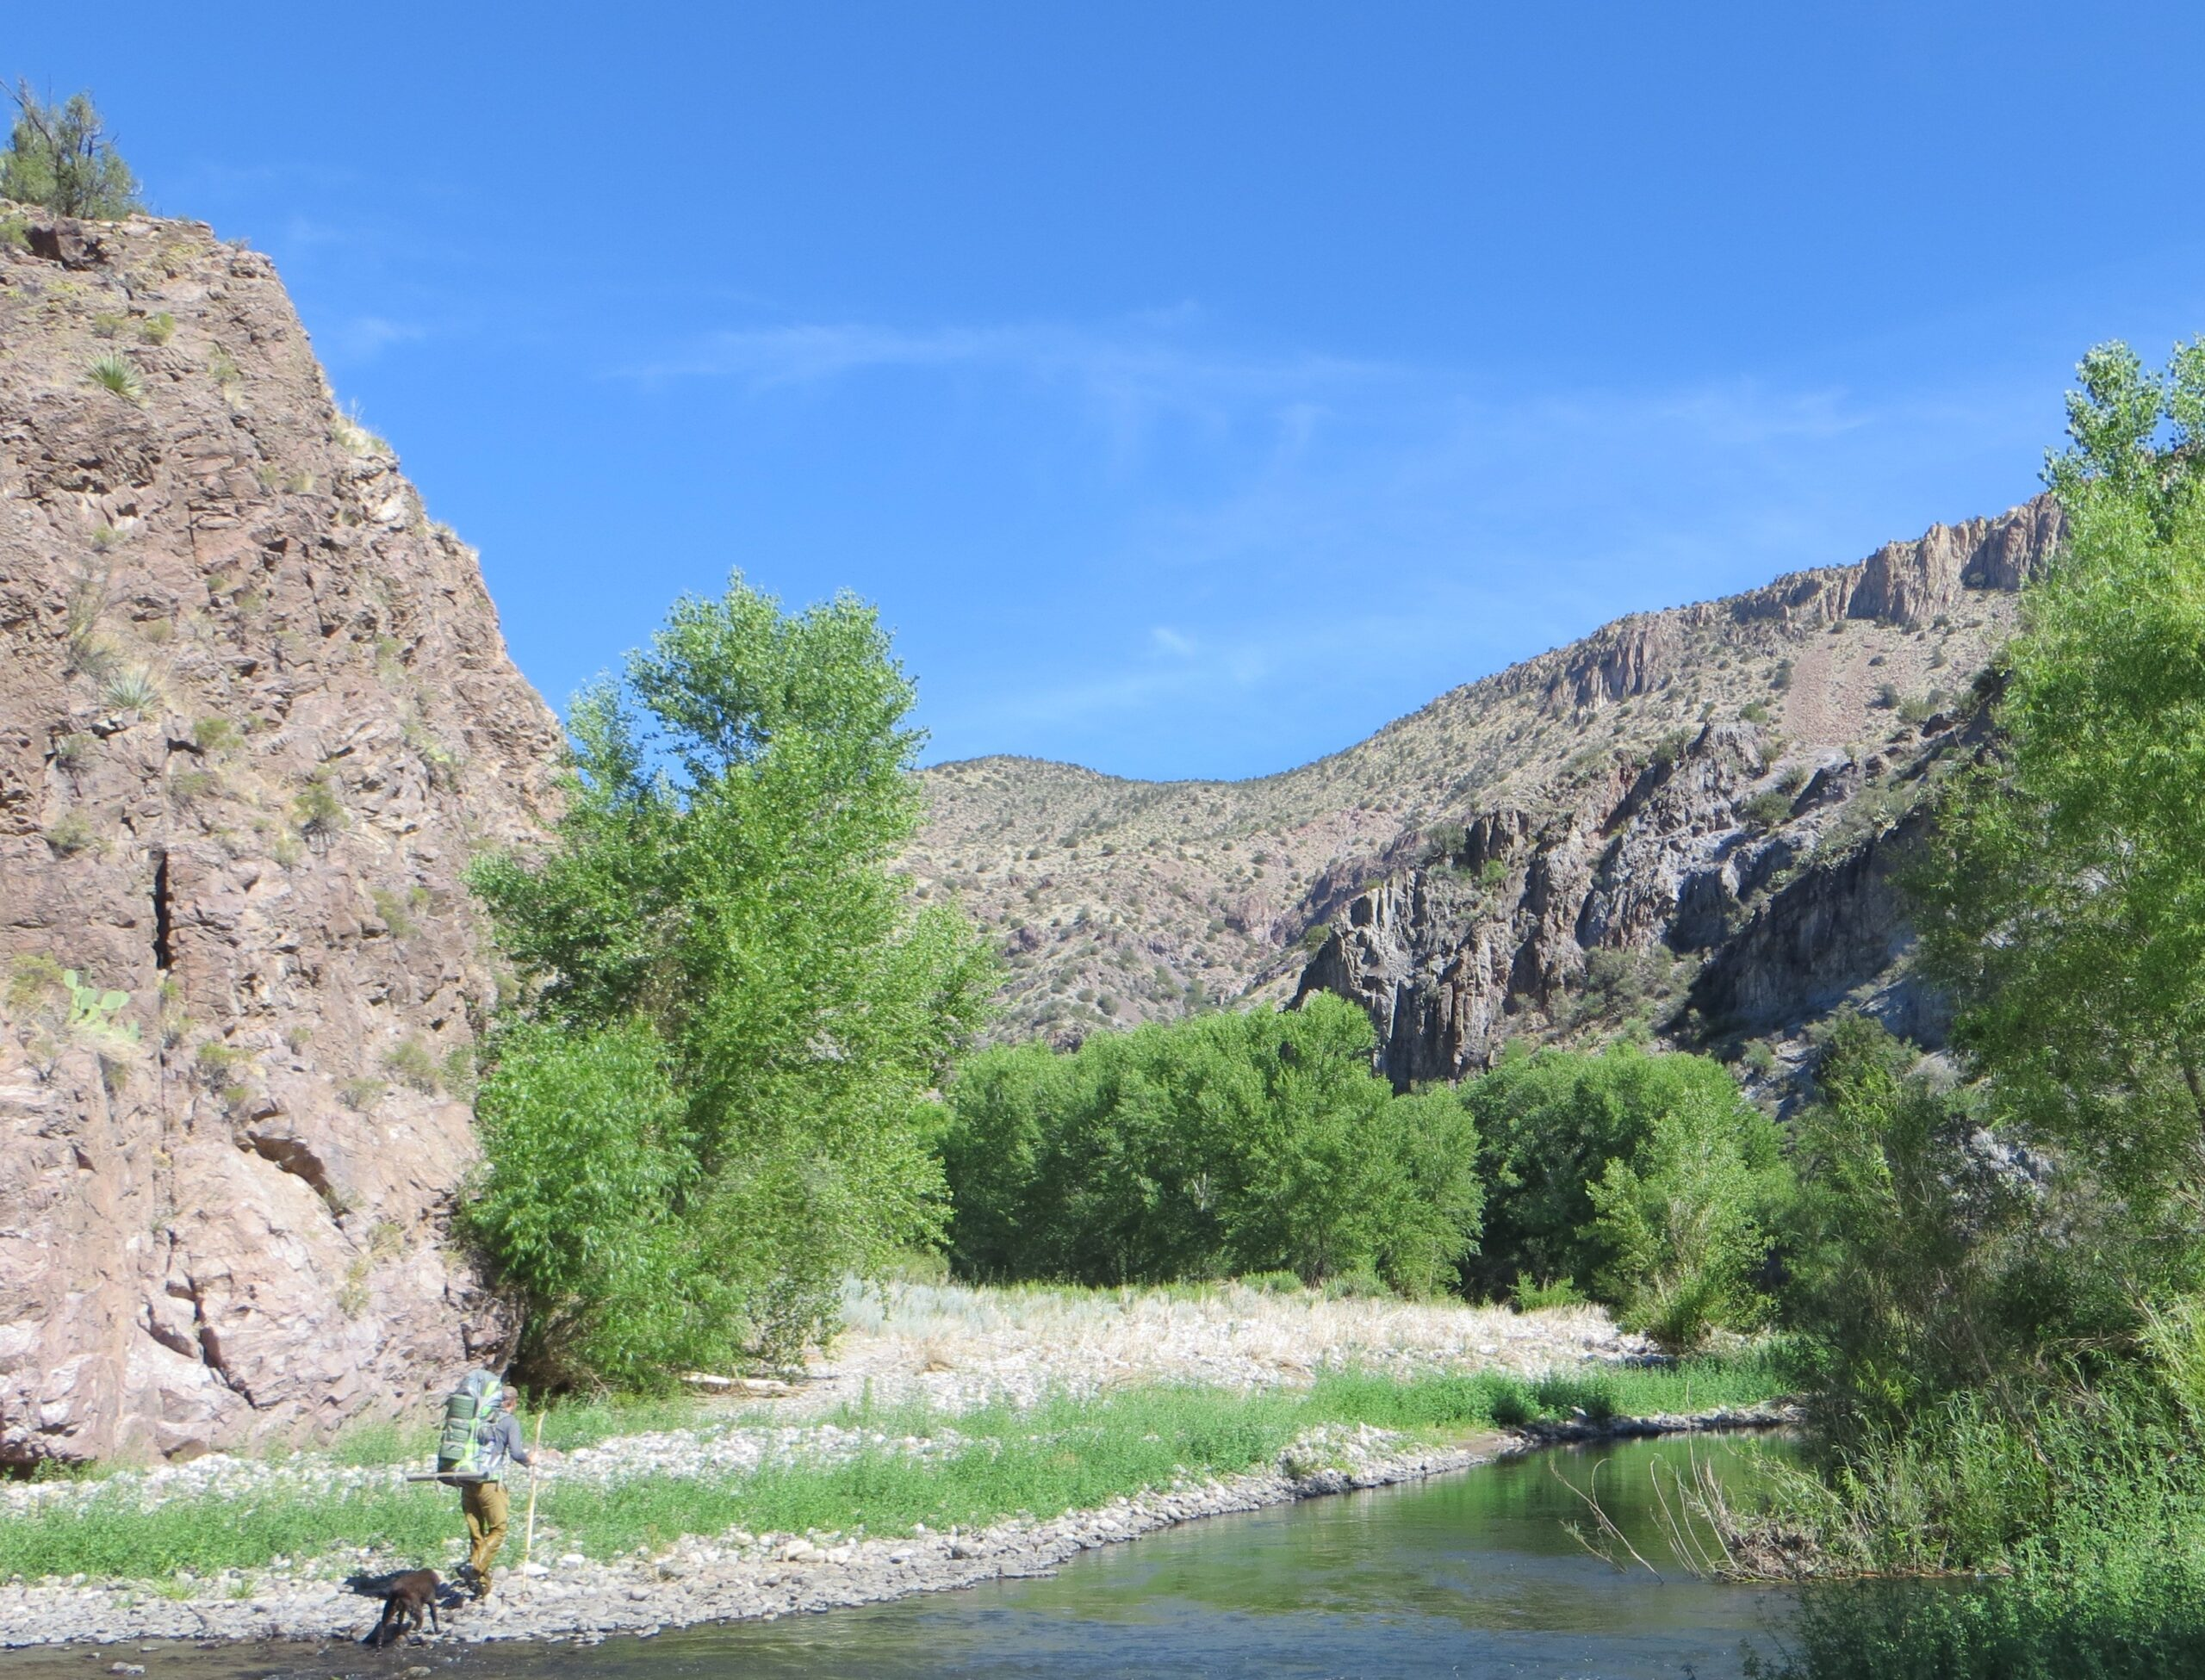 Study finds wild Gila and San Francisco rivers greatly contribute to local economy